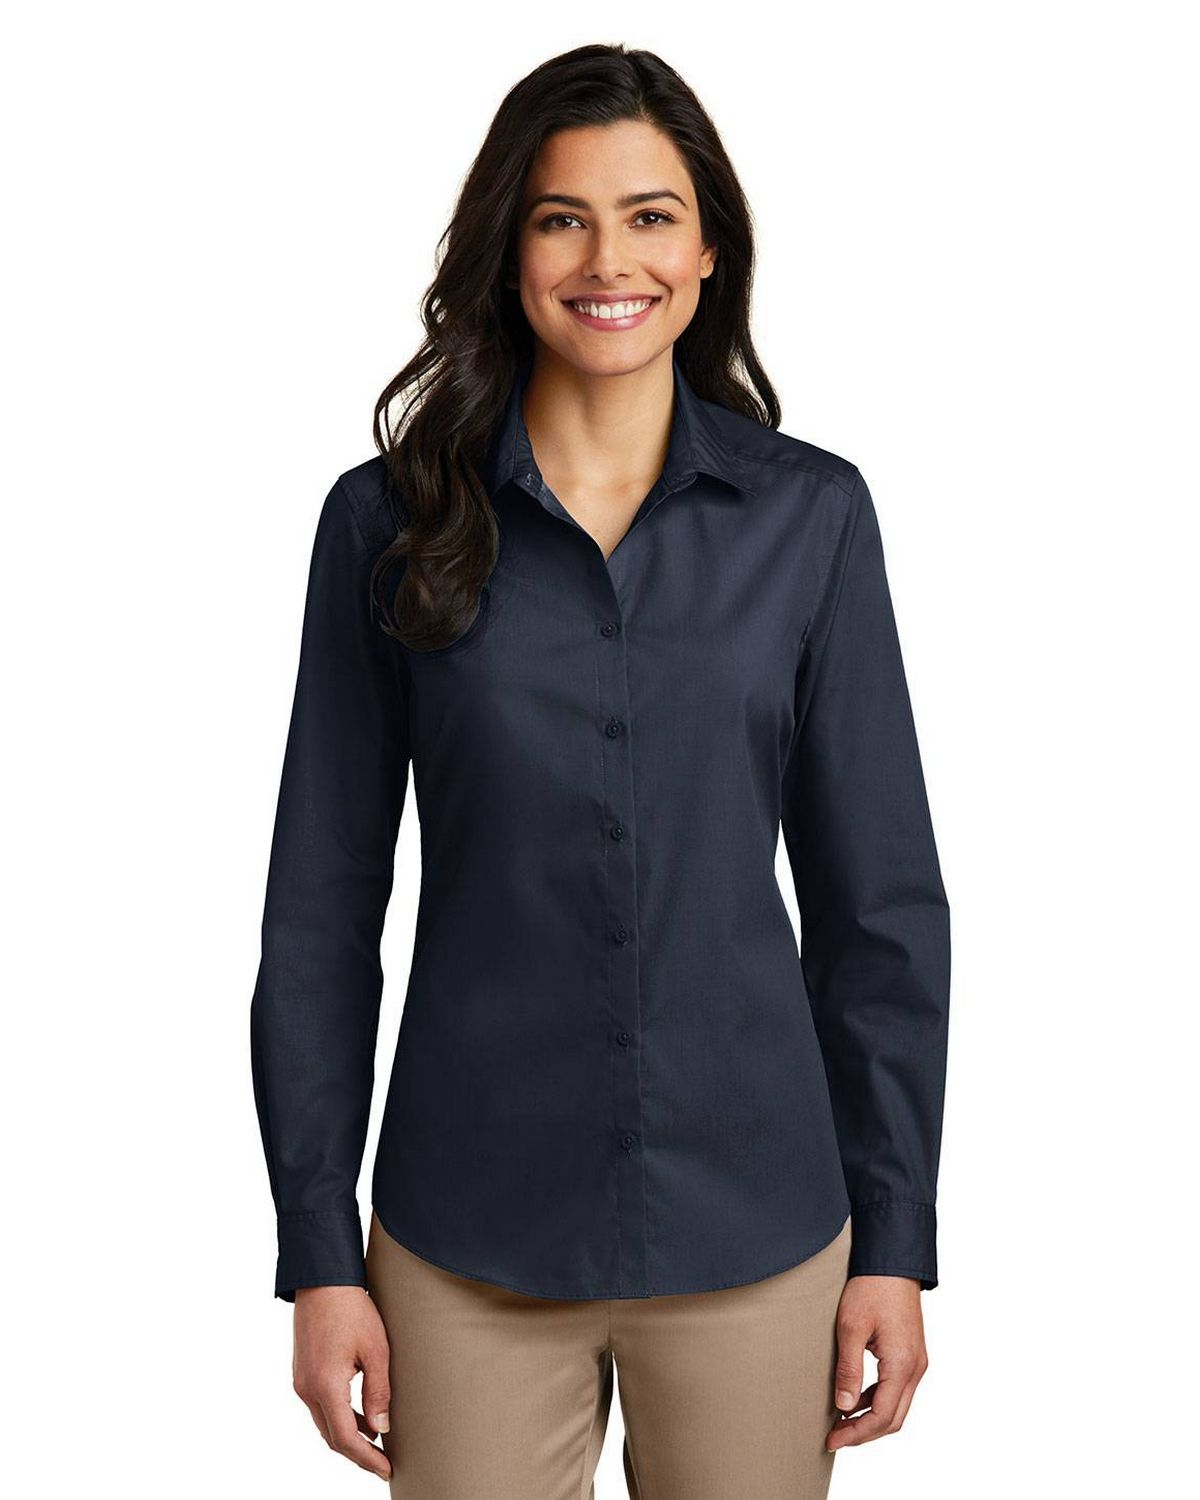 Port Authority LW100 Women's Long Sleeve Carefree Poplin Shirt - River Blue Navy - XS from Port Authority